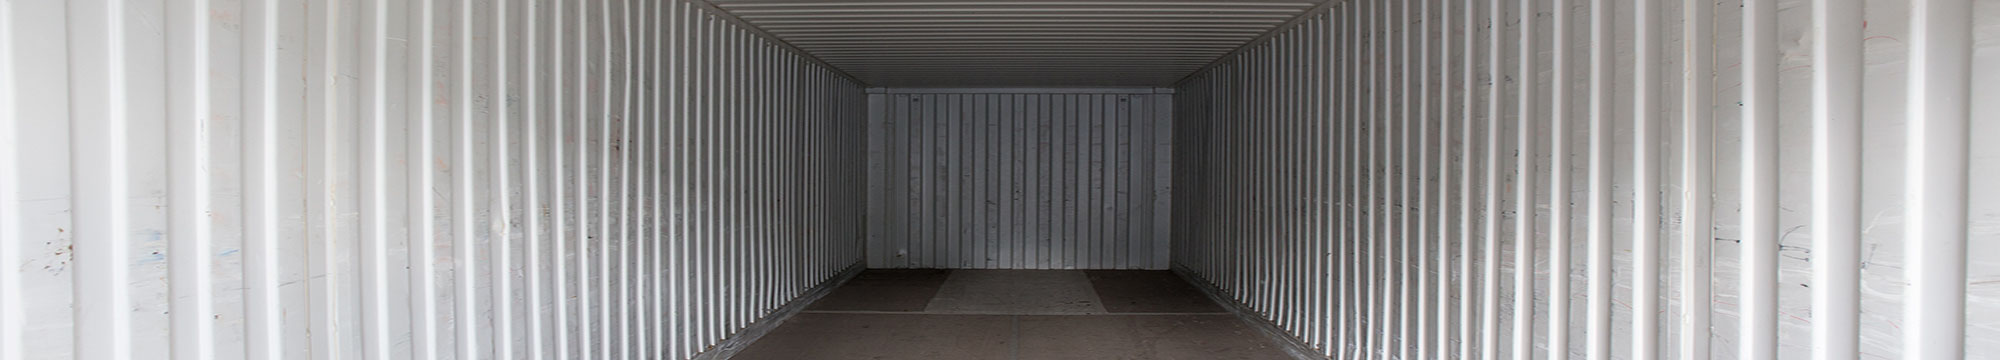 inside shipping container